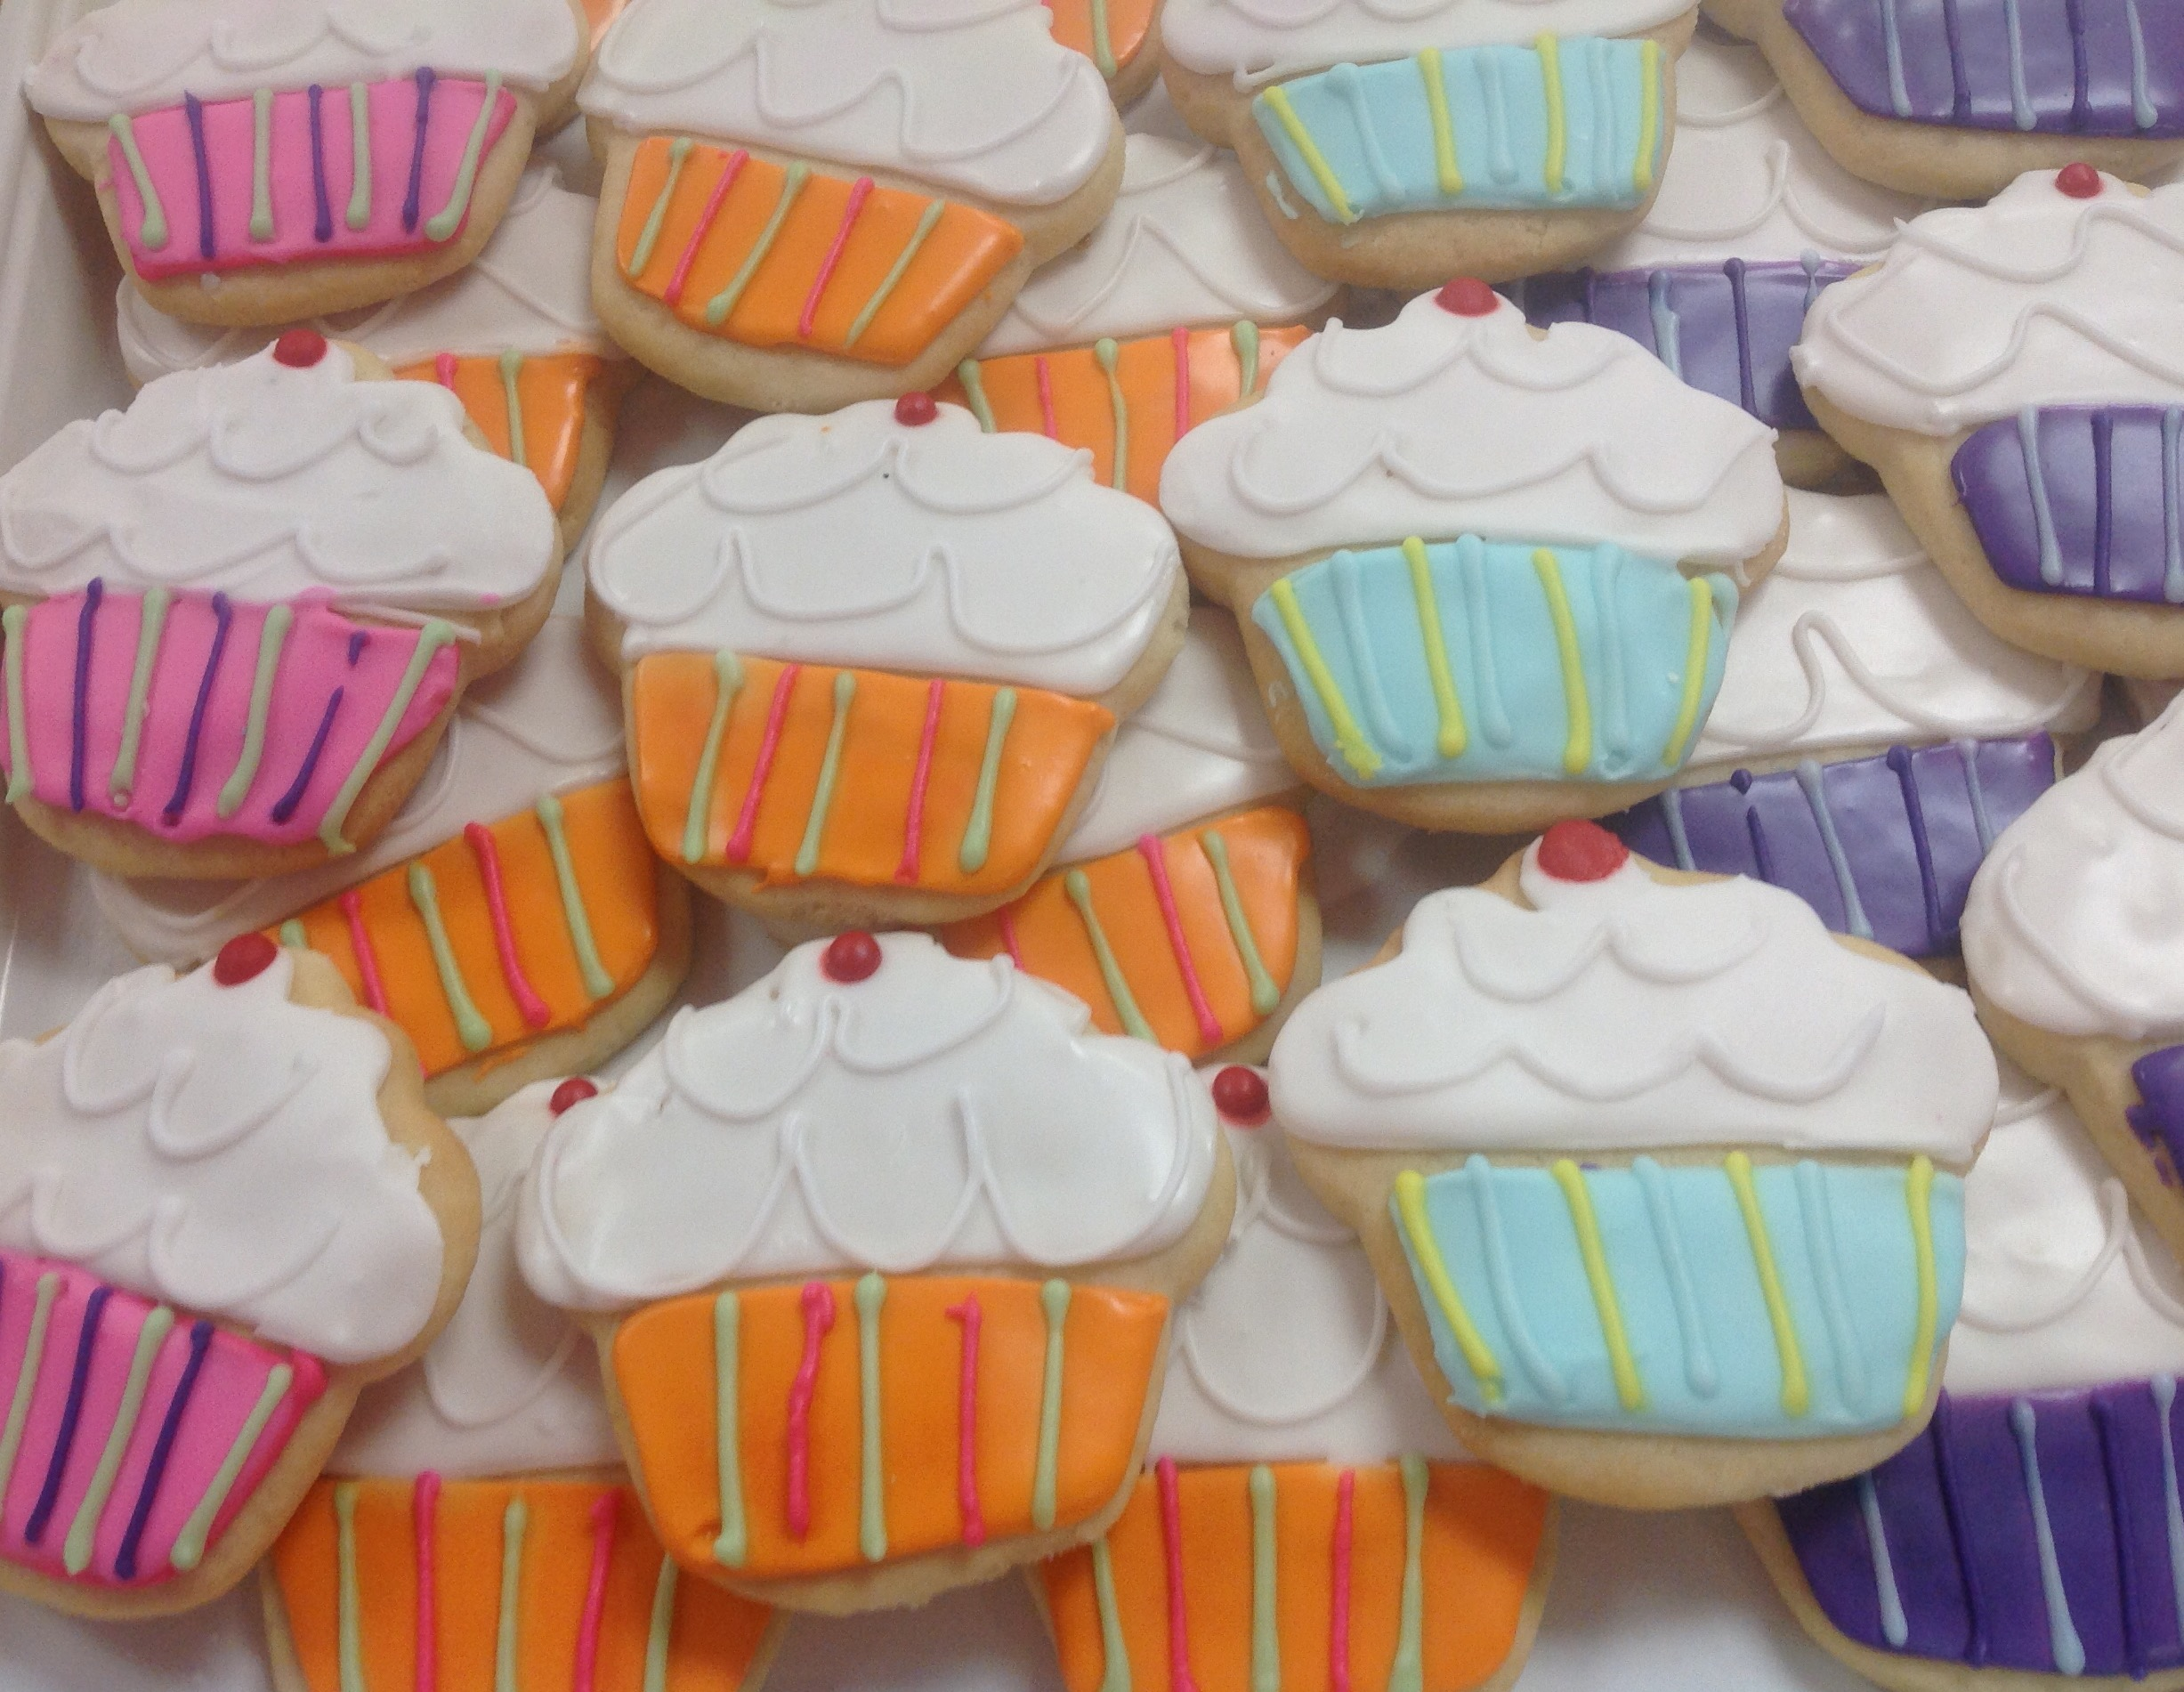 Gluten free cutout cookies at Dolce and Biscotti Italian Bakery